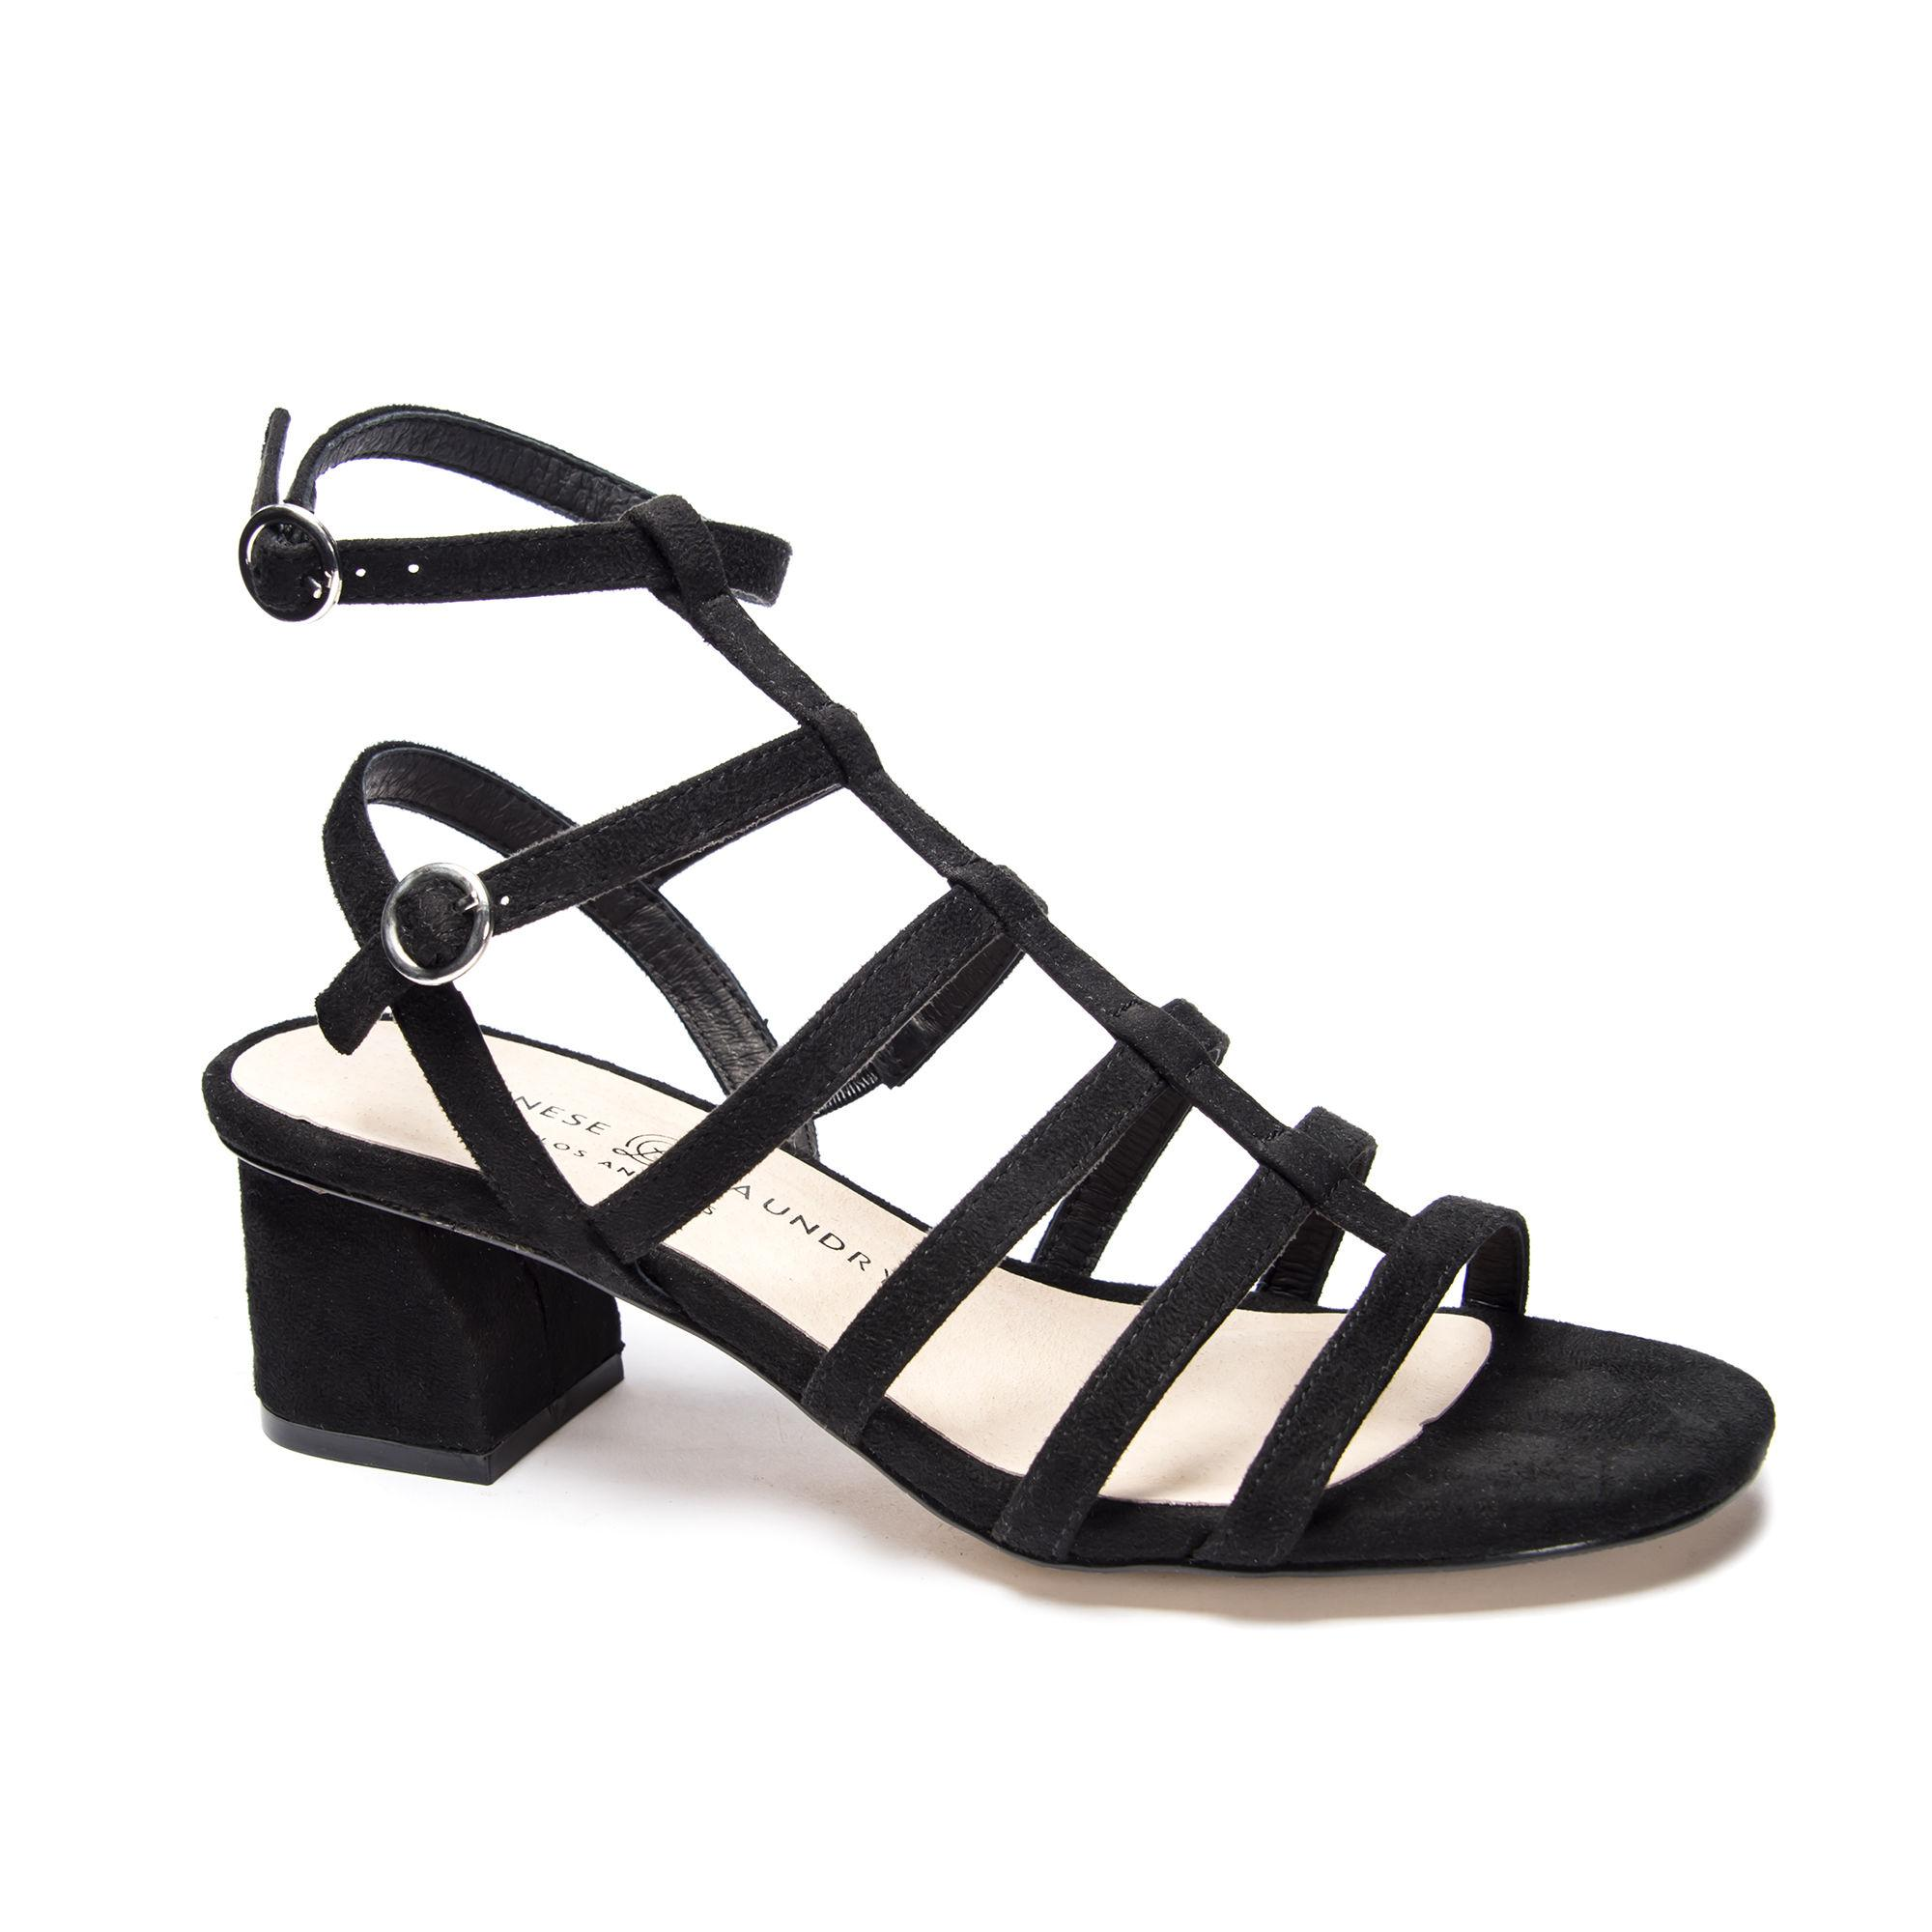 432b7c2e281 Lyst - Chinese Laundry Monroe Block Heel Sandal in Black